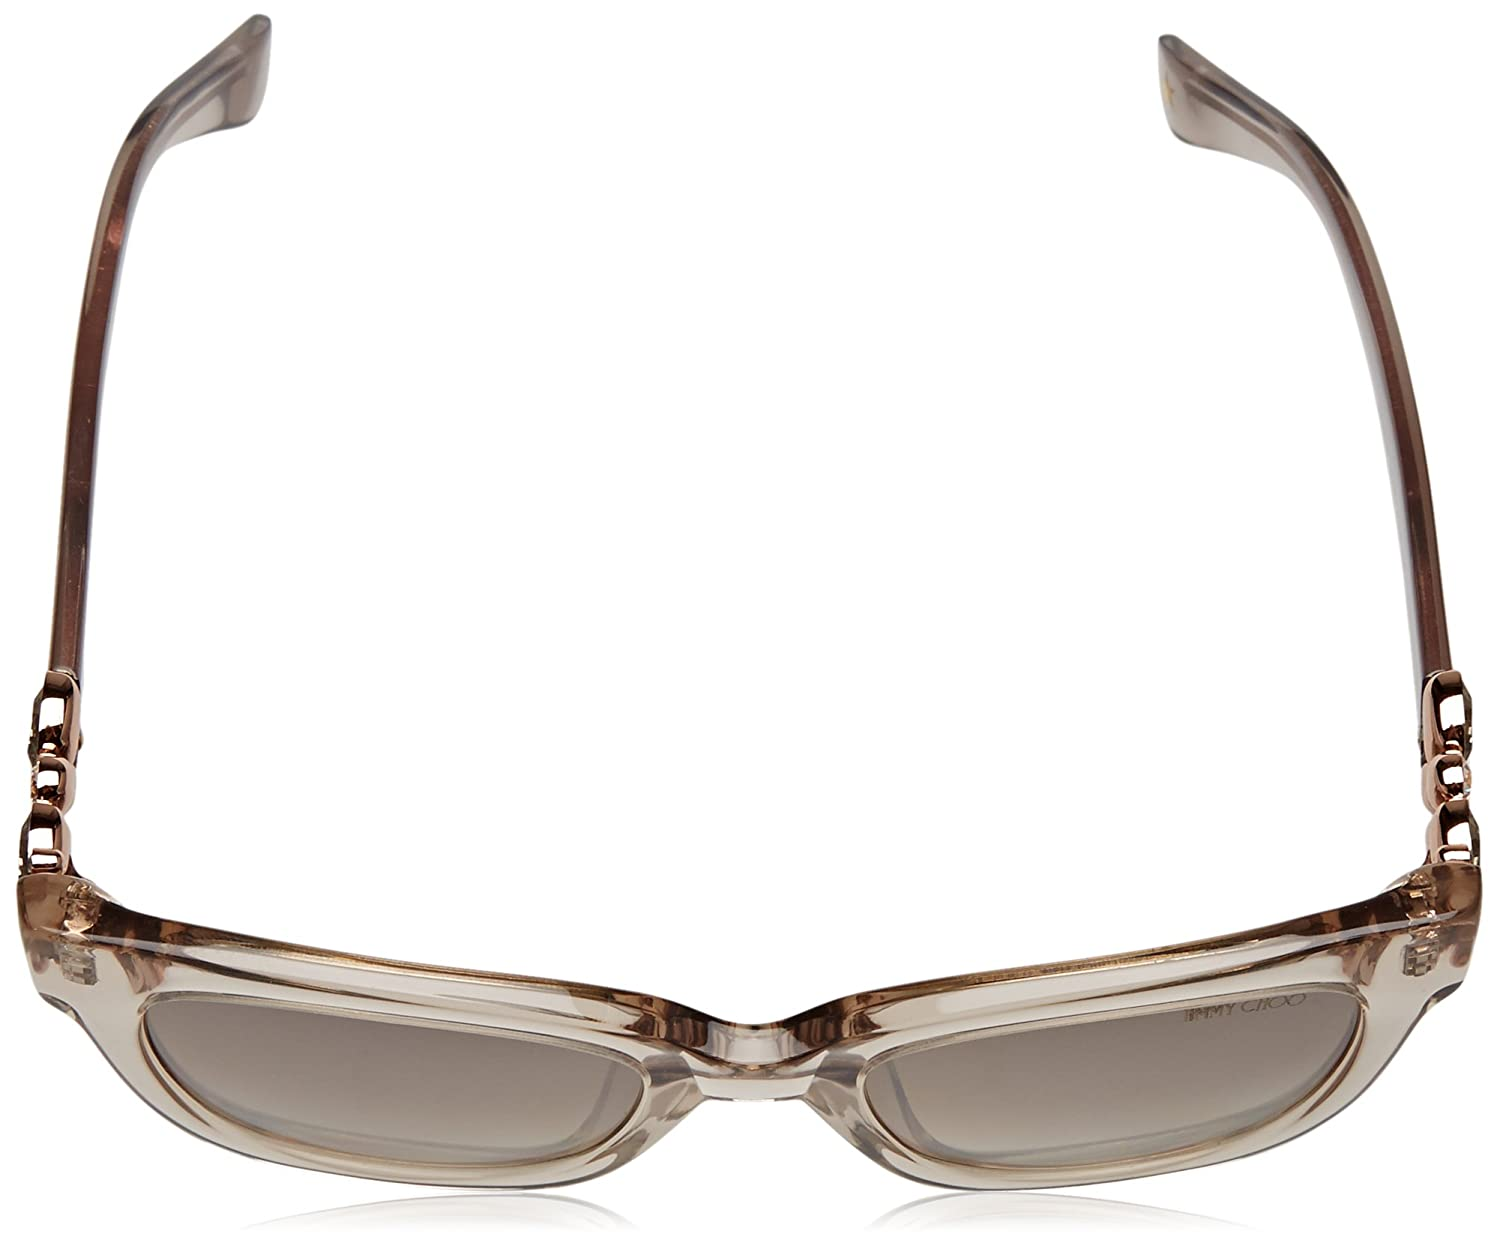 Jimmy Choo Womens Maggie Sunglasses